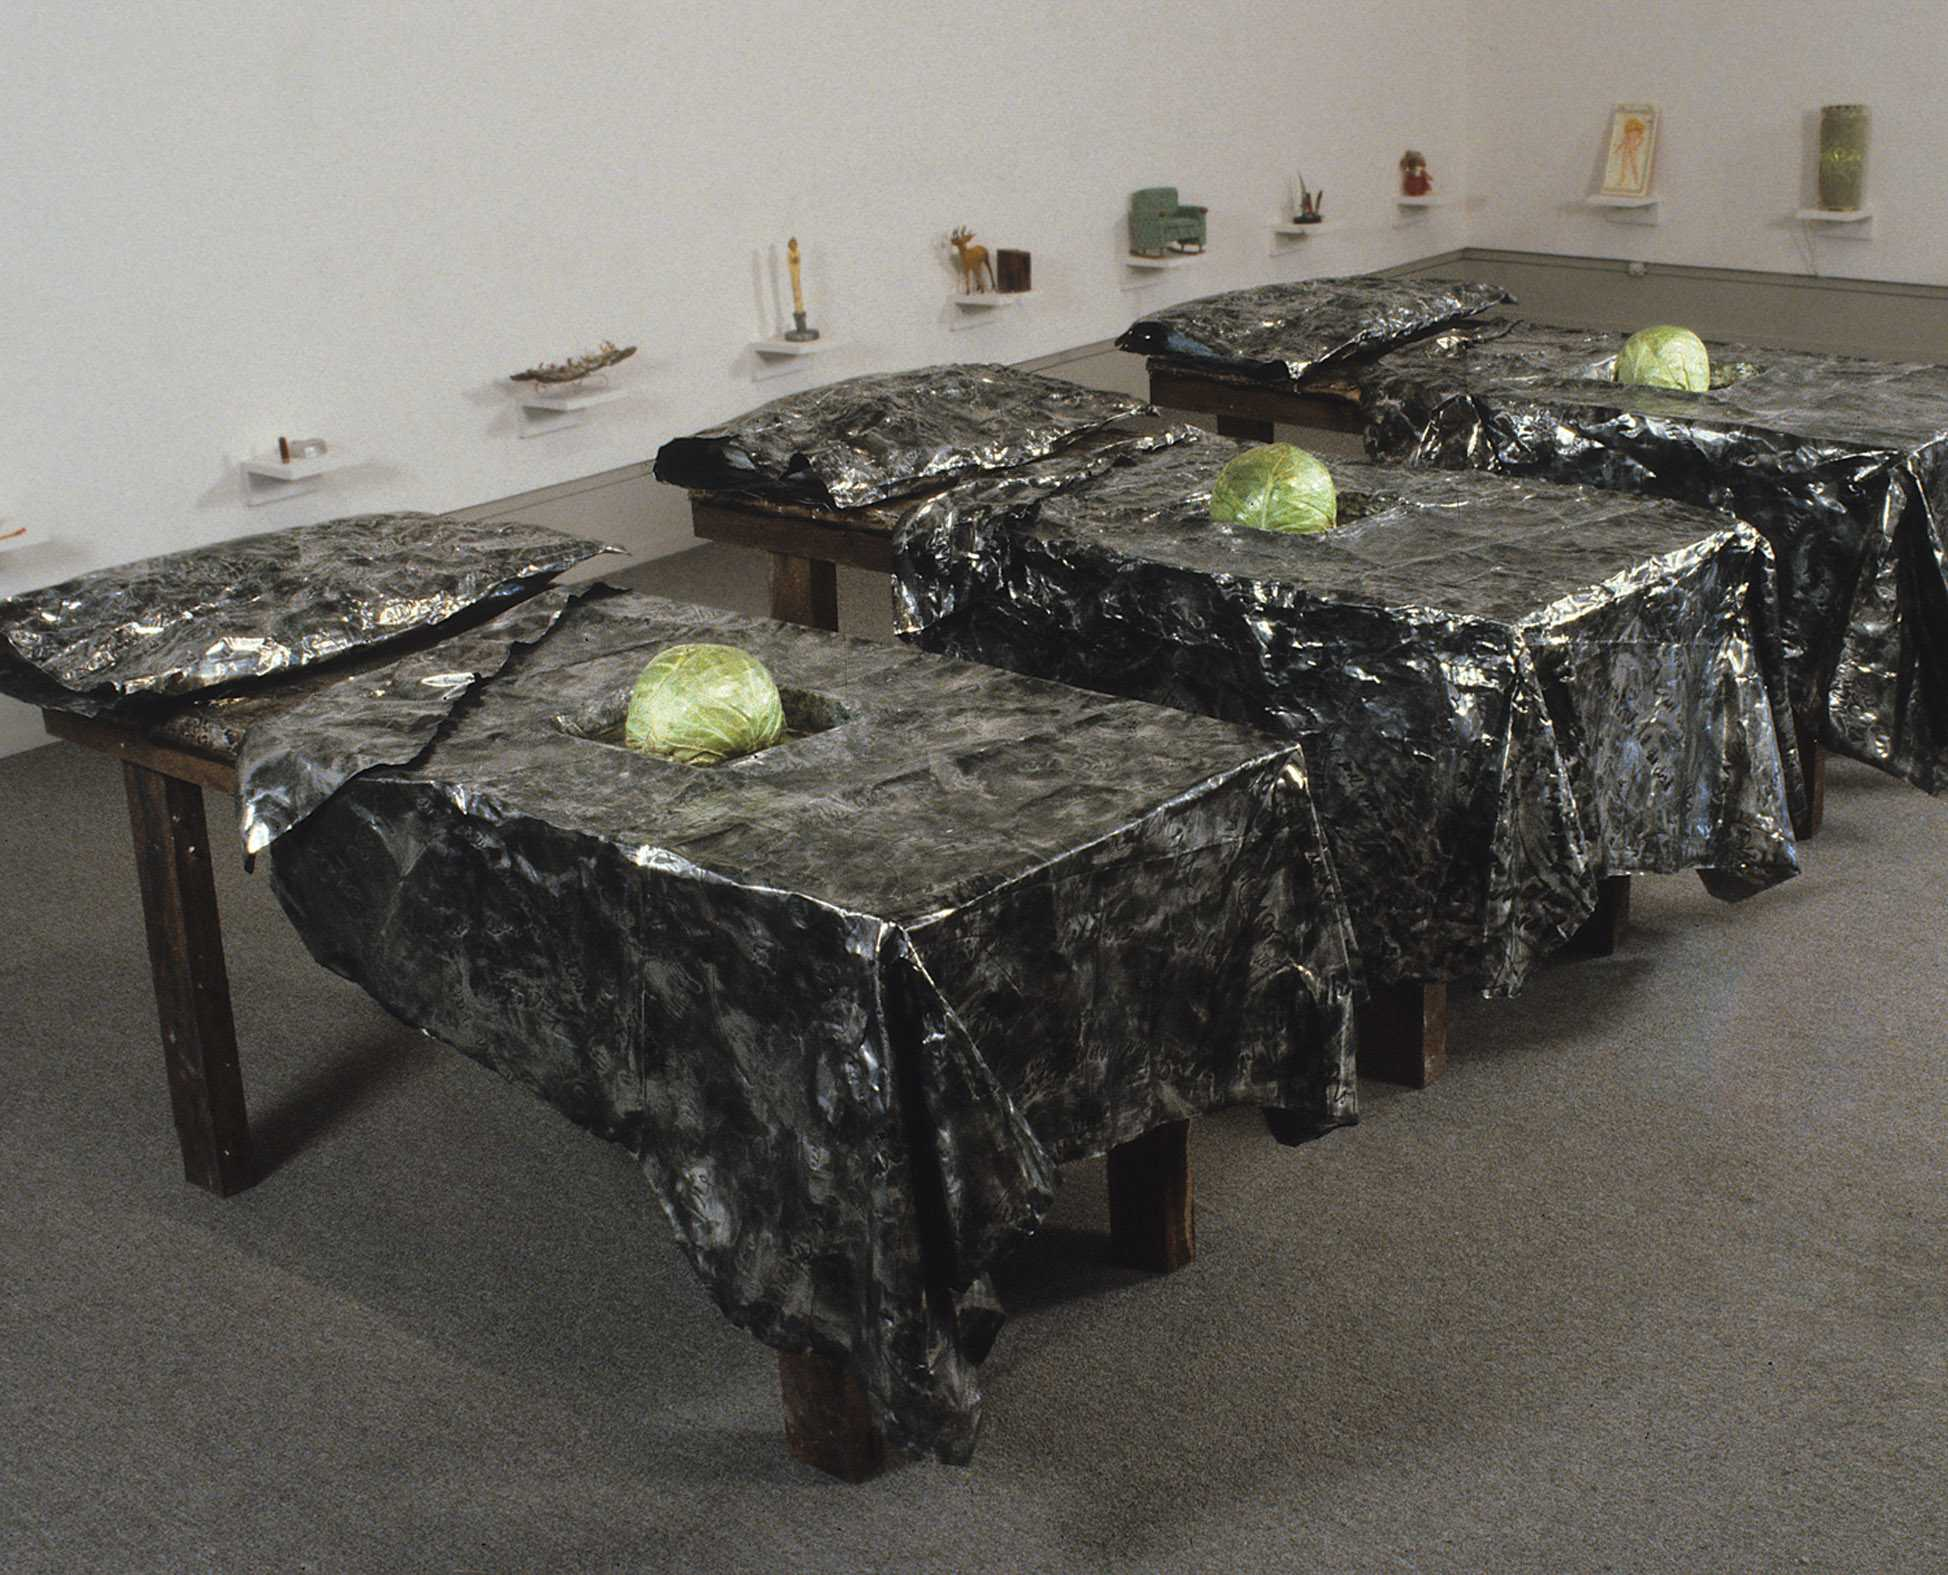 Beds and pillows made out of aluminum foiled was created by Jane Gilmor for an art exhibit called